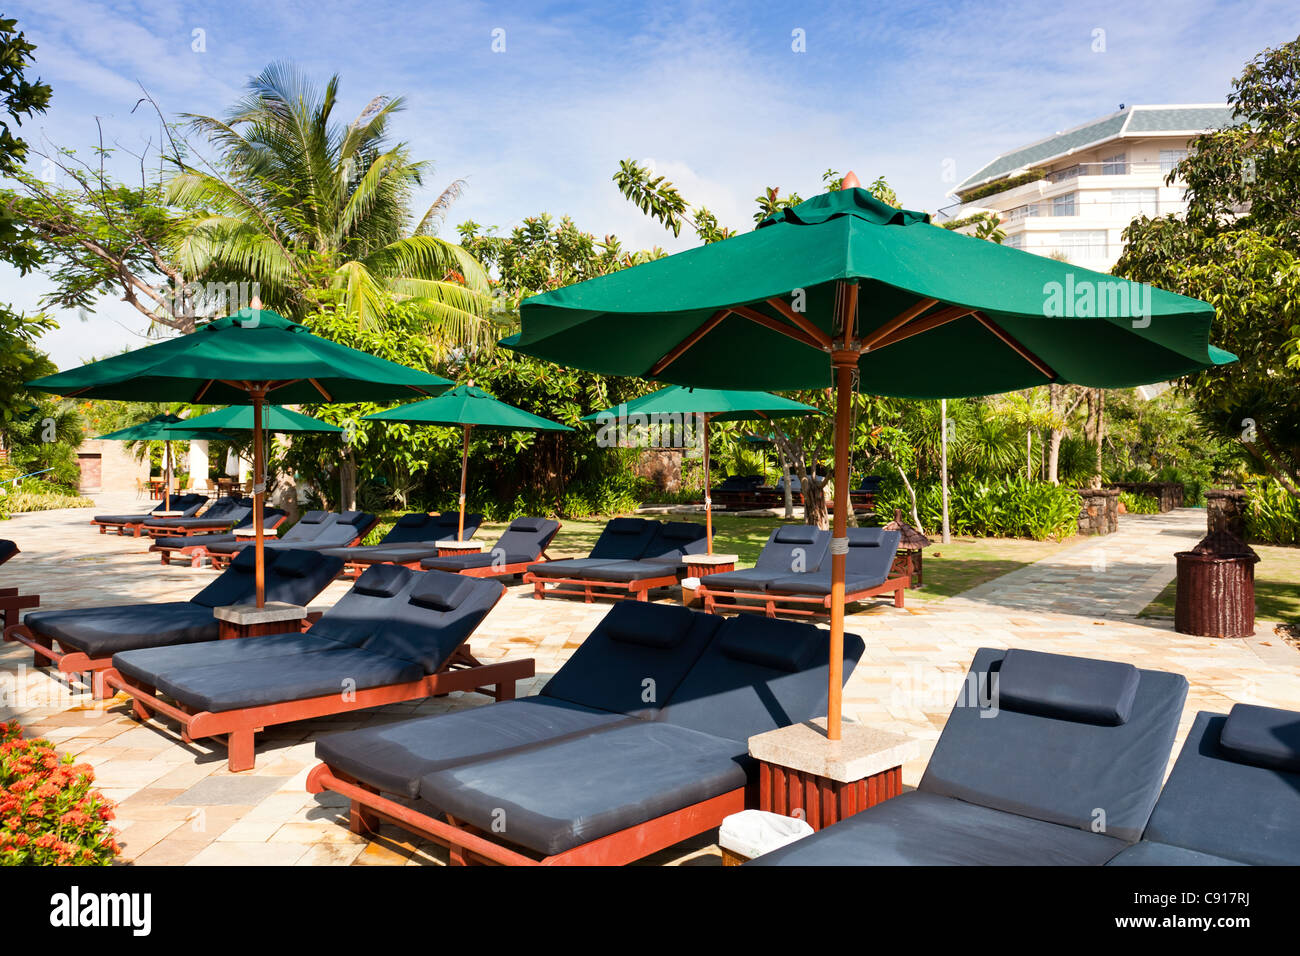 Lounge chairs and sunshades by the swimming pool in a ...